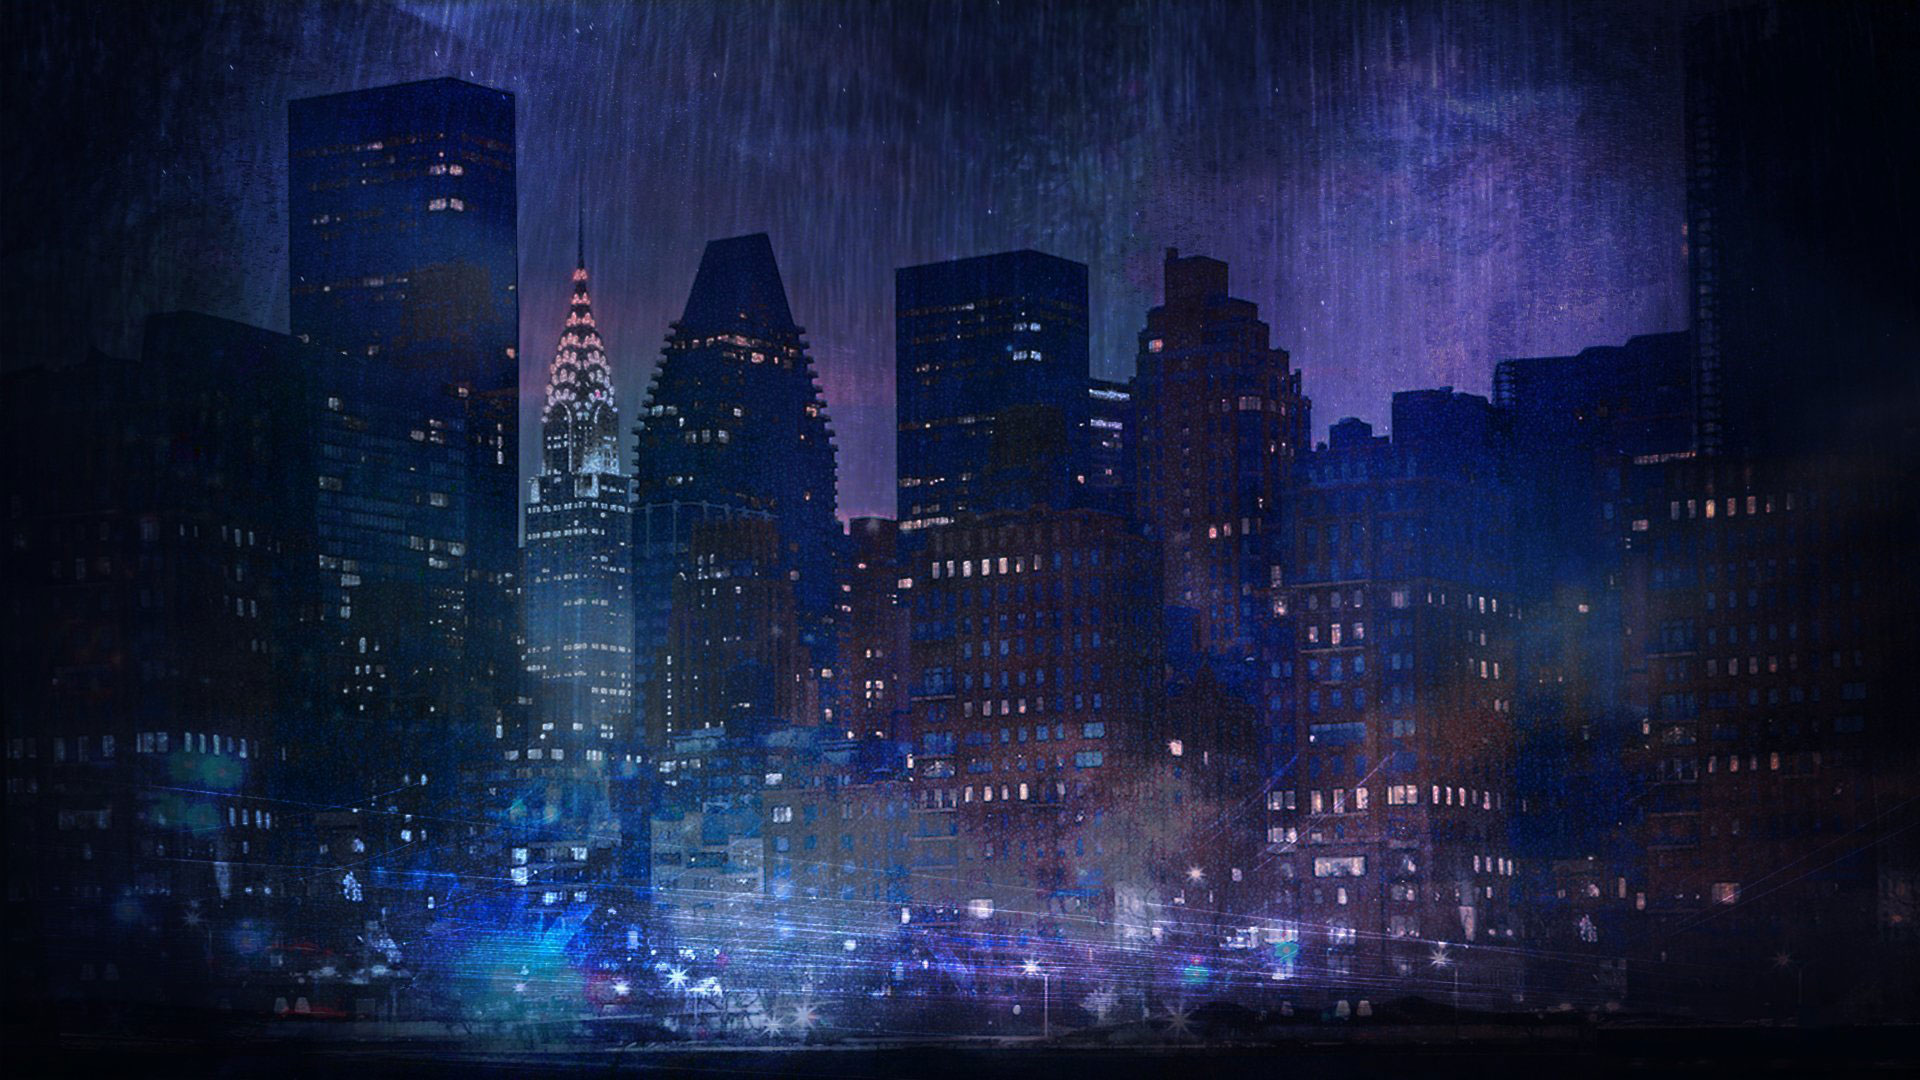 Free Vampire: The Masquerade - Coteries of New York Wallpaper in 1920x1080